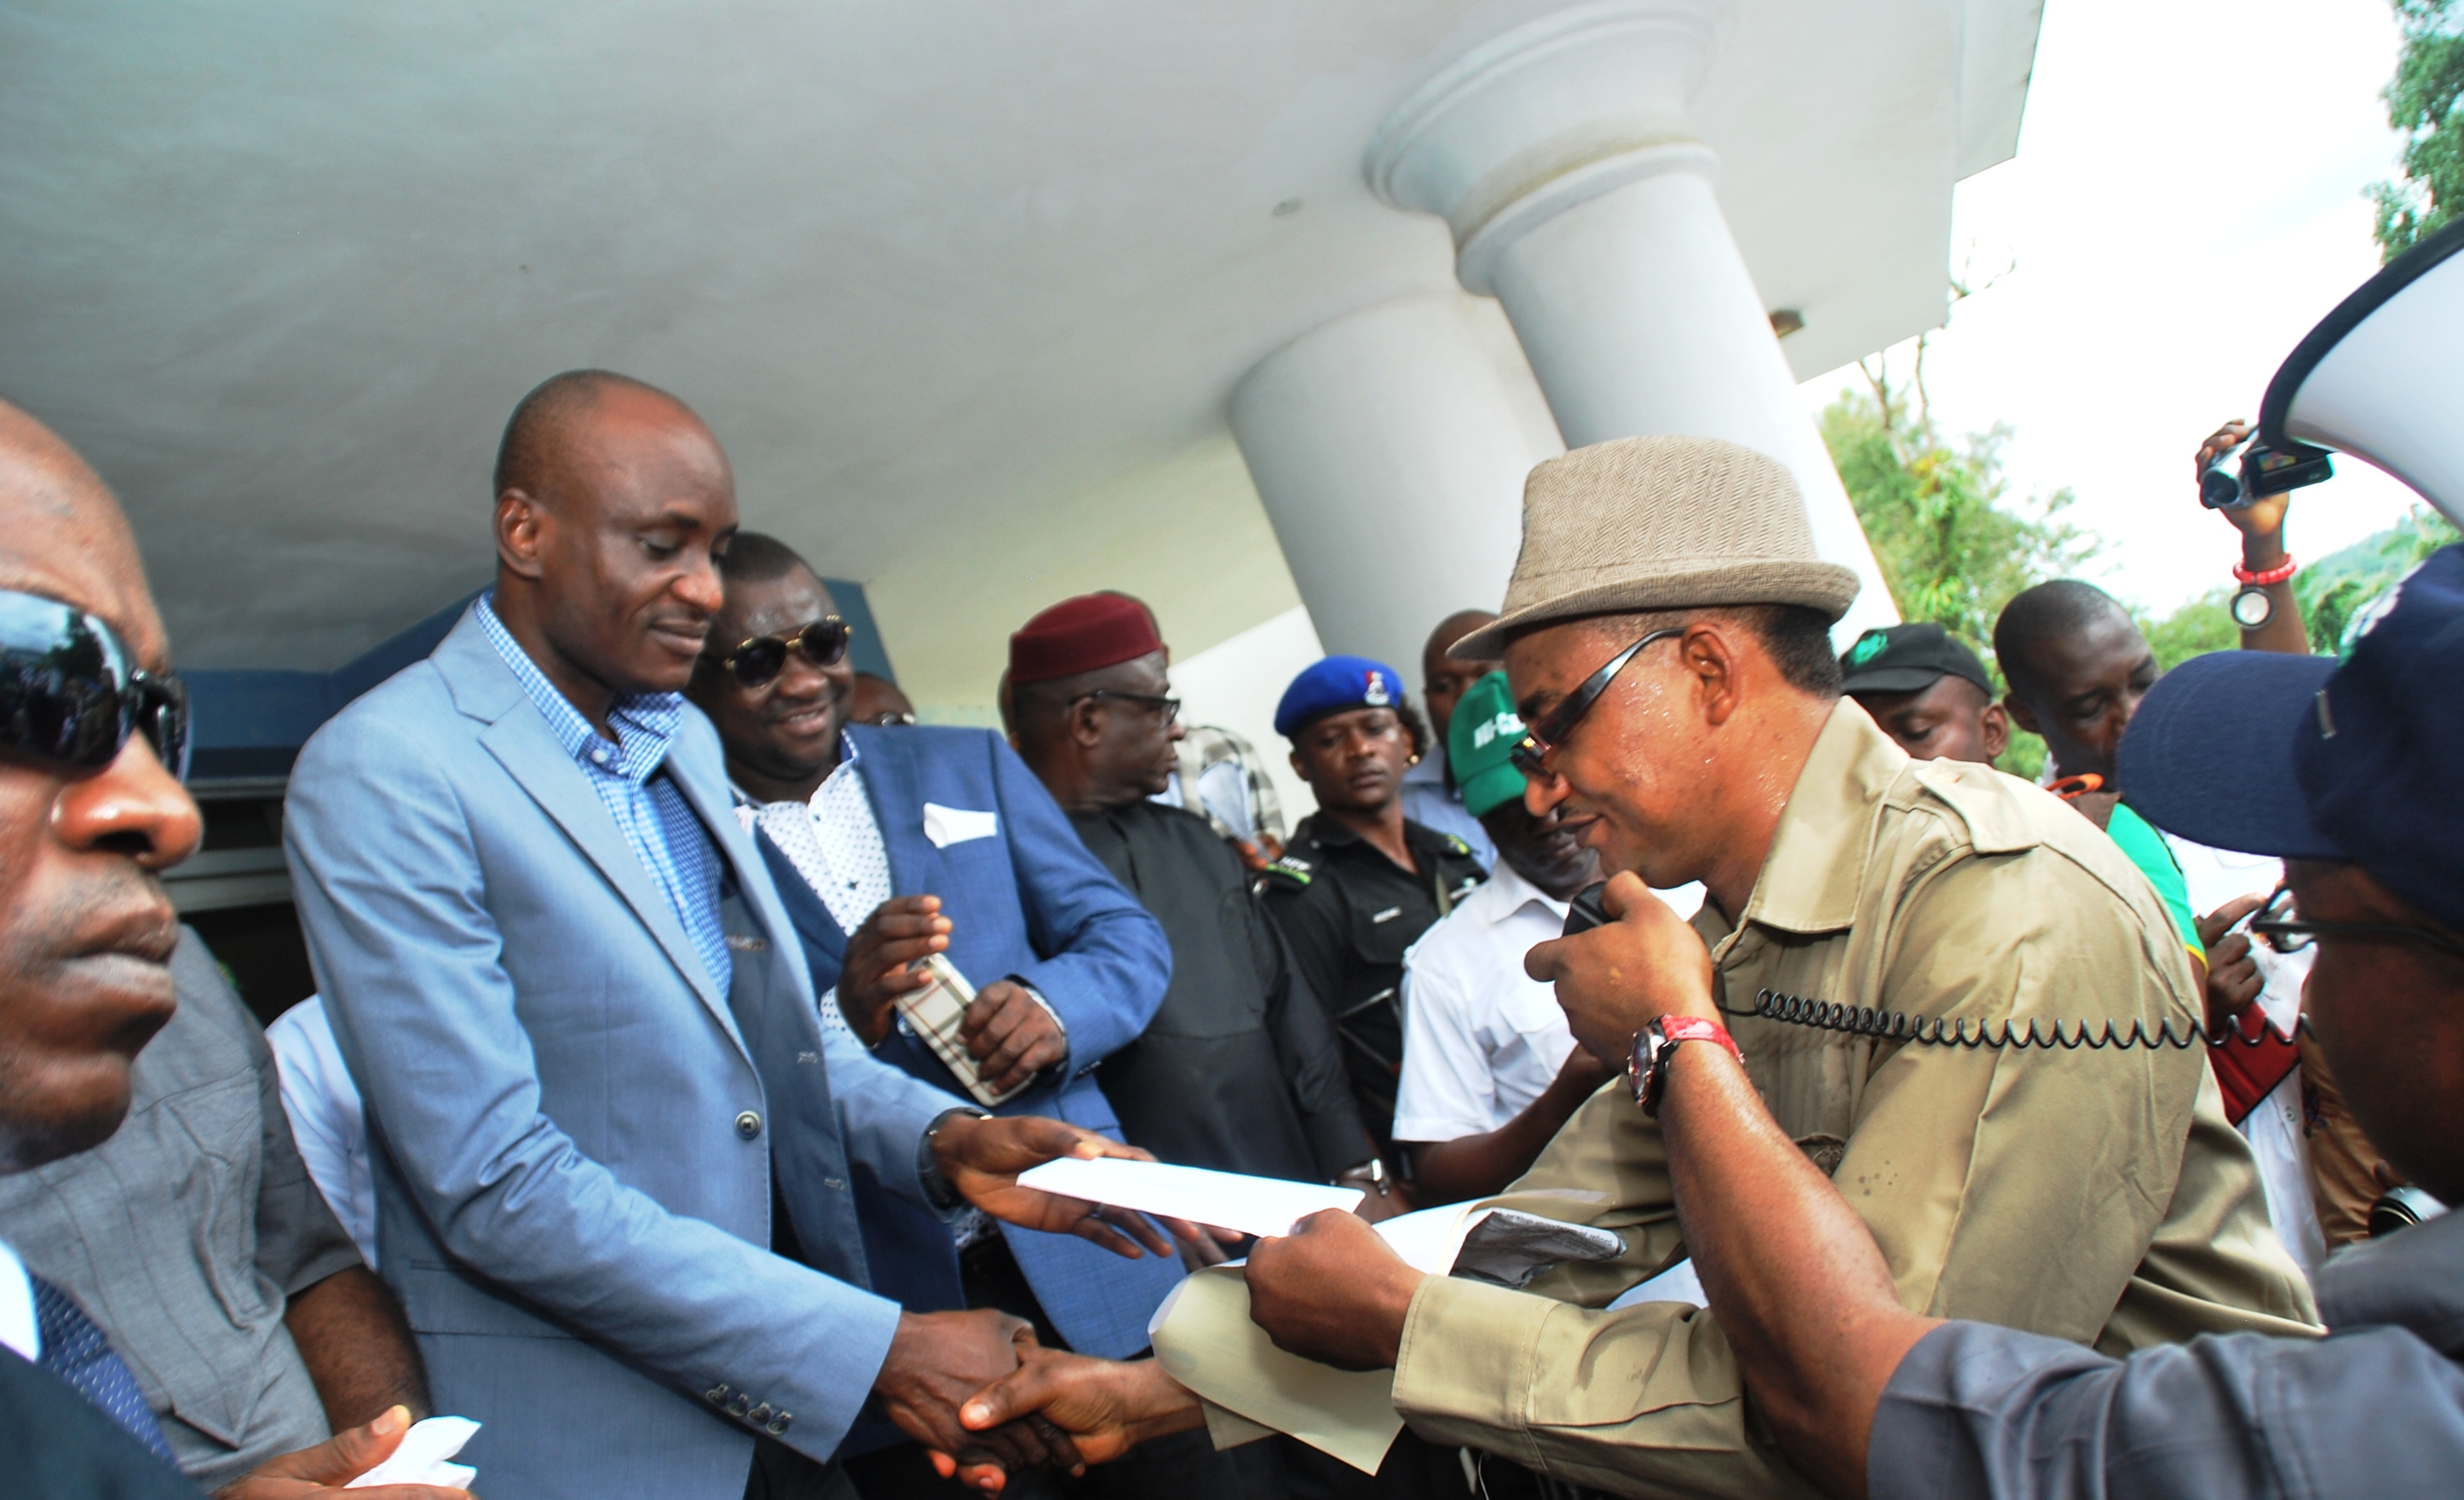 Speaker John Gaul (left) receiving a letter from the State Chairman of NLC, Comrade John Ushie (right) when Labor led a protest recently to the Assembly to call for an end to corruption in Nigeria (file pix)